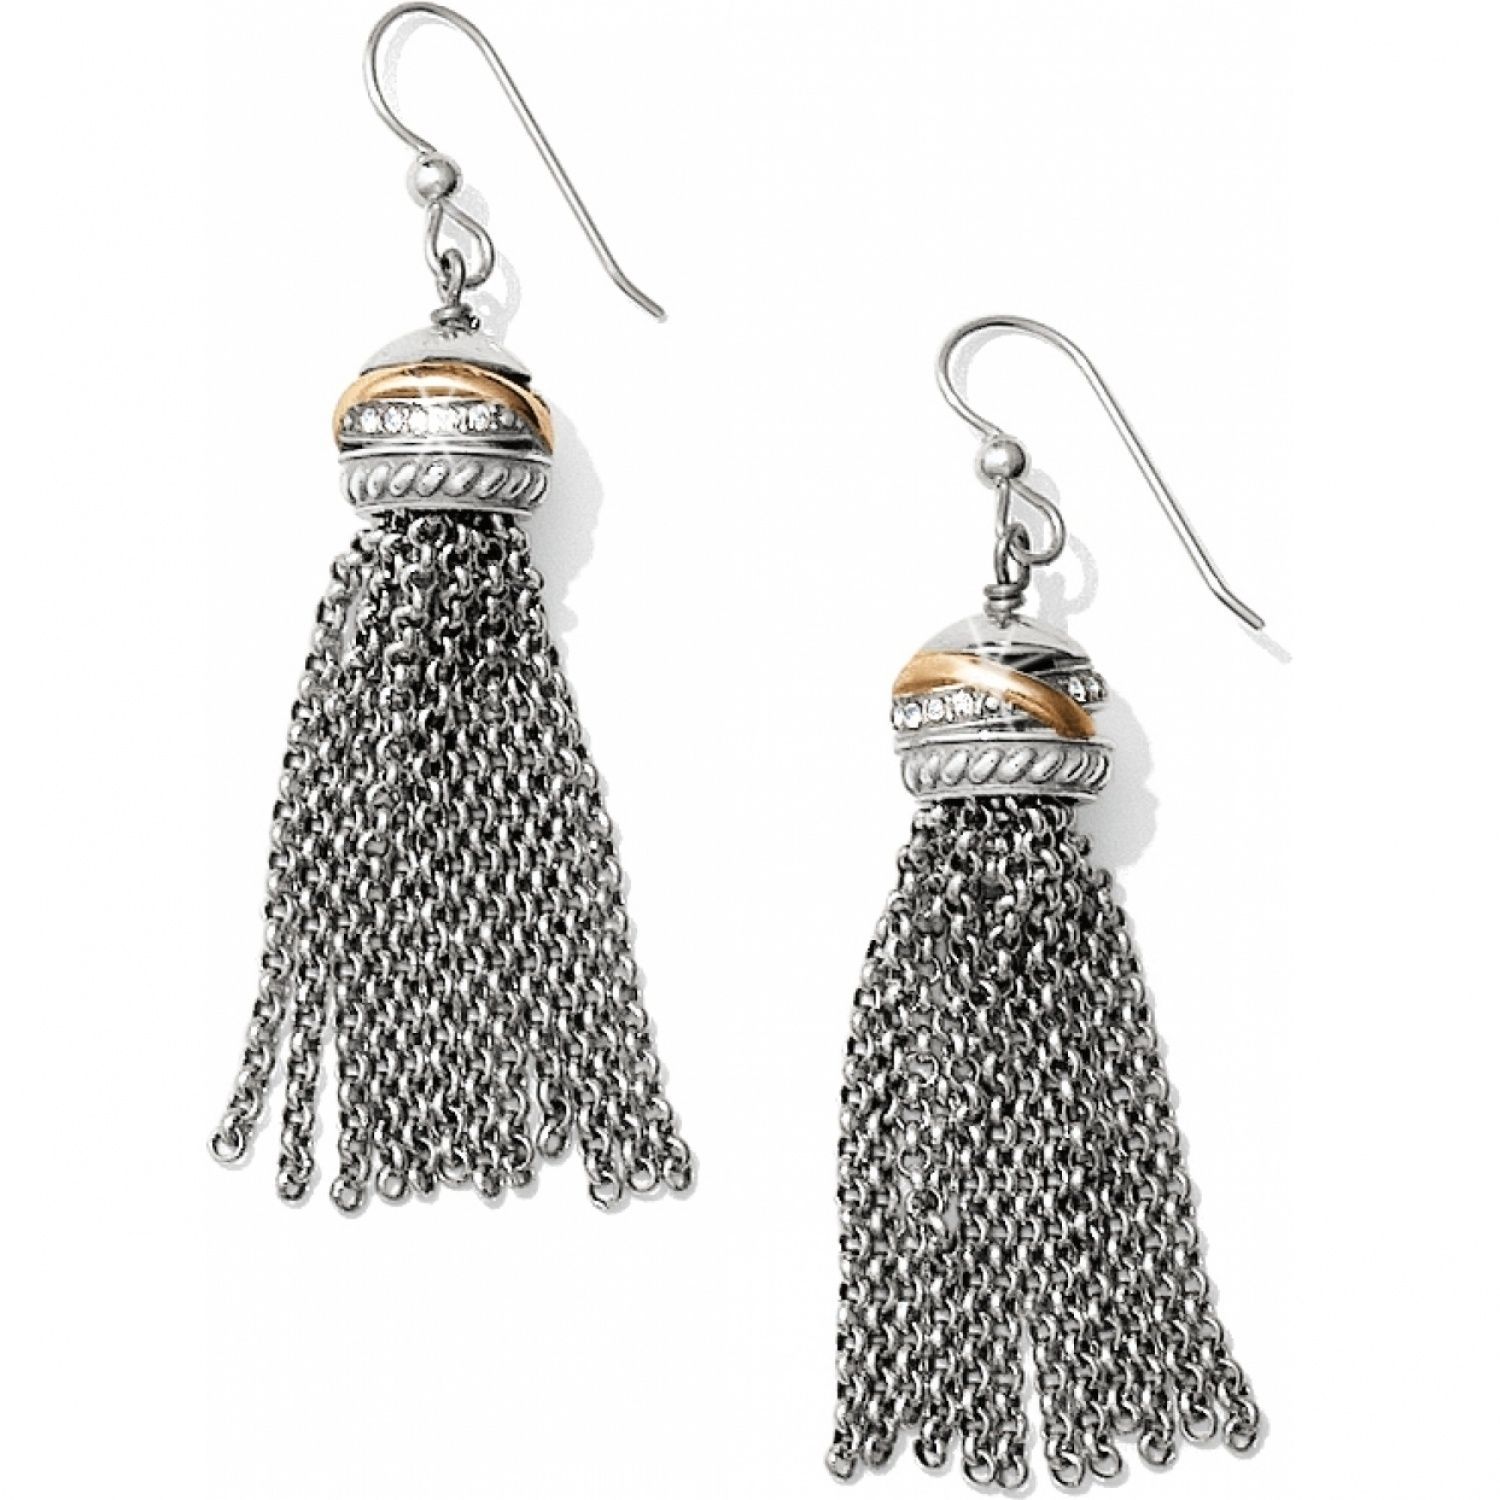 Neptune's Rings Tassel French Wire Earrings